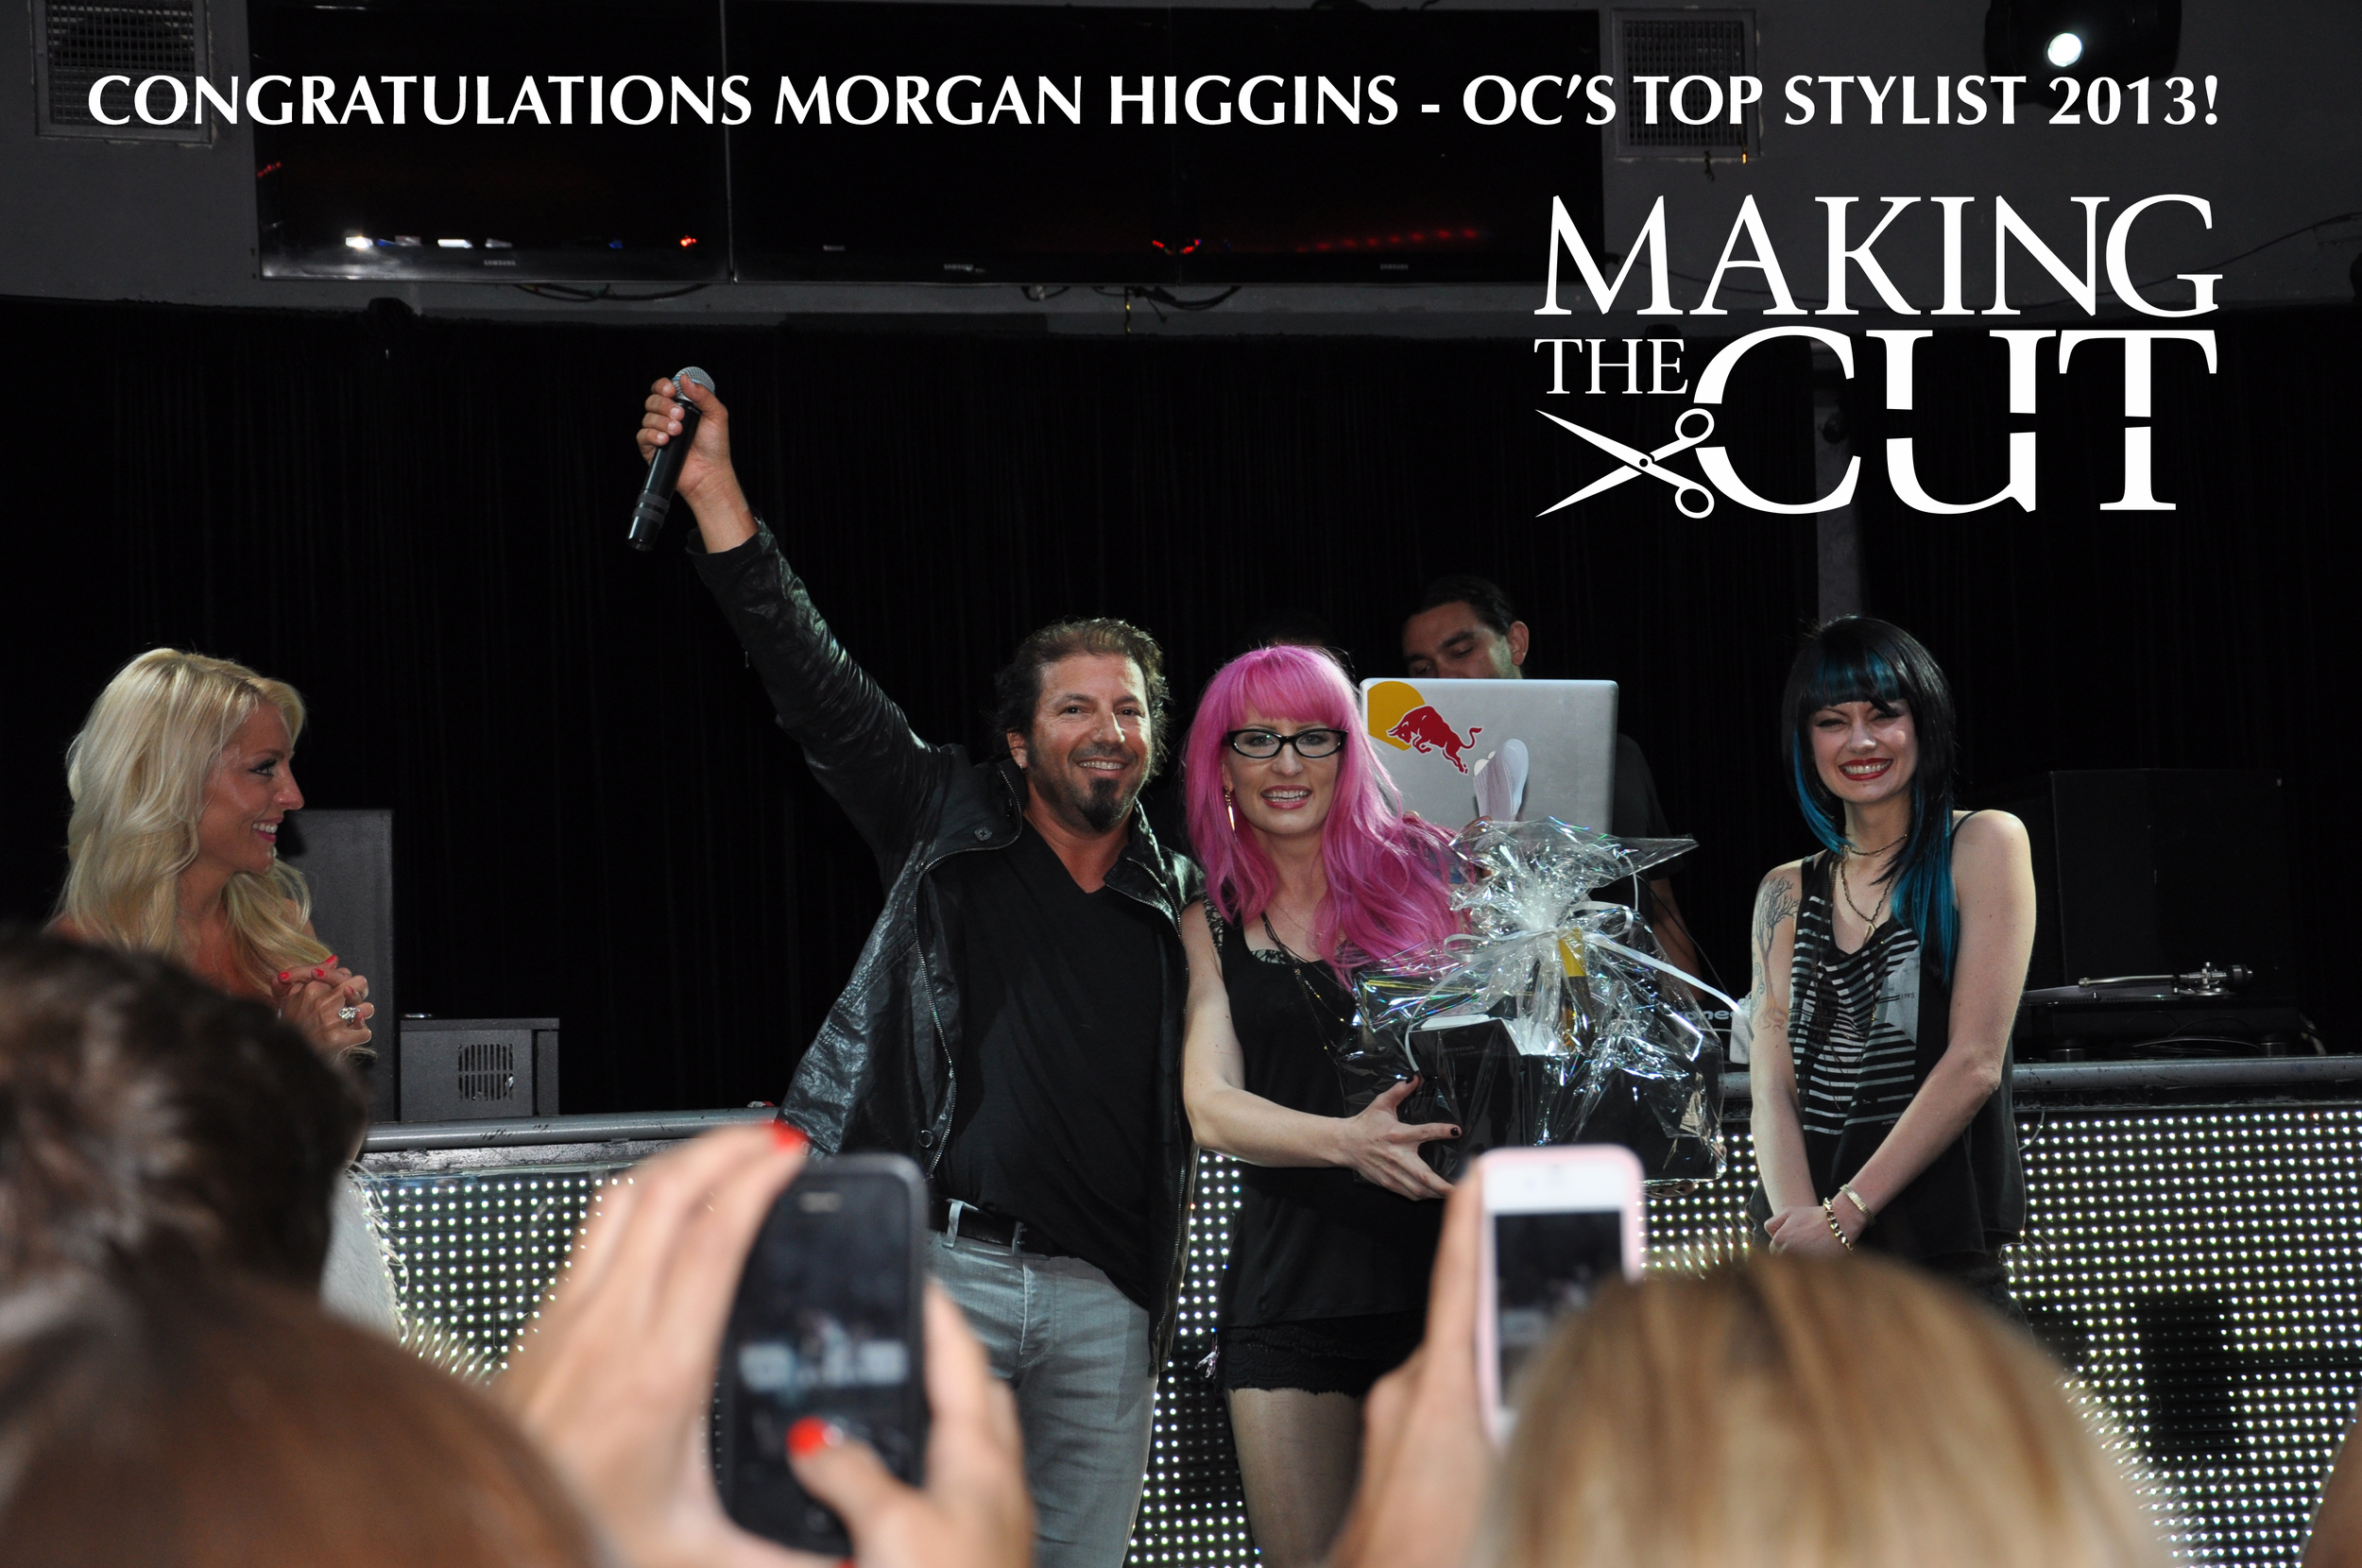 2013 OC Top Stylist: Morgan Higgins of Salon Bleu in San Clemente